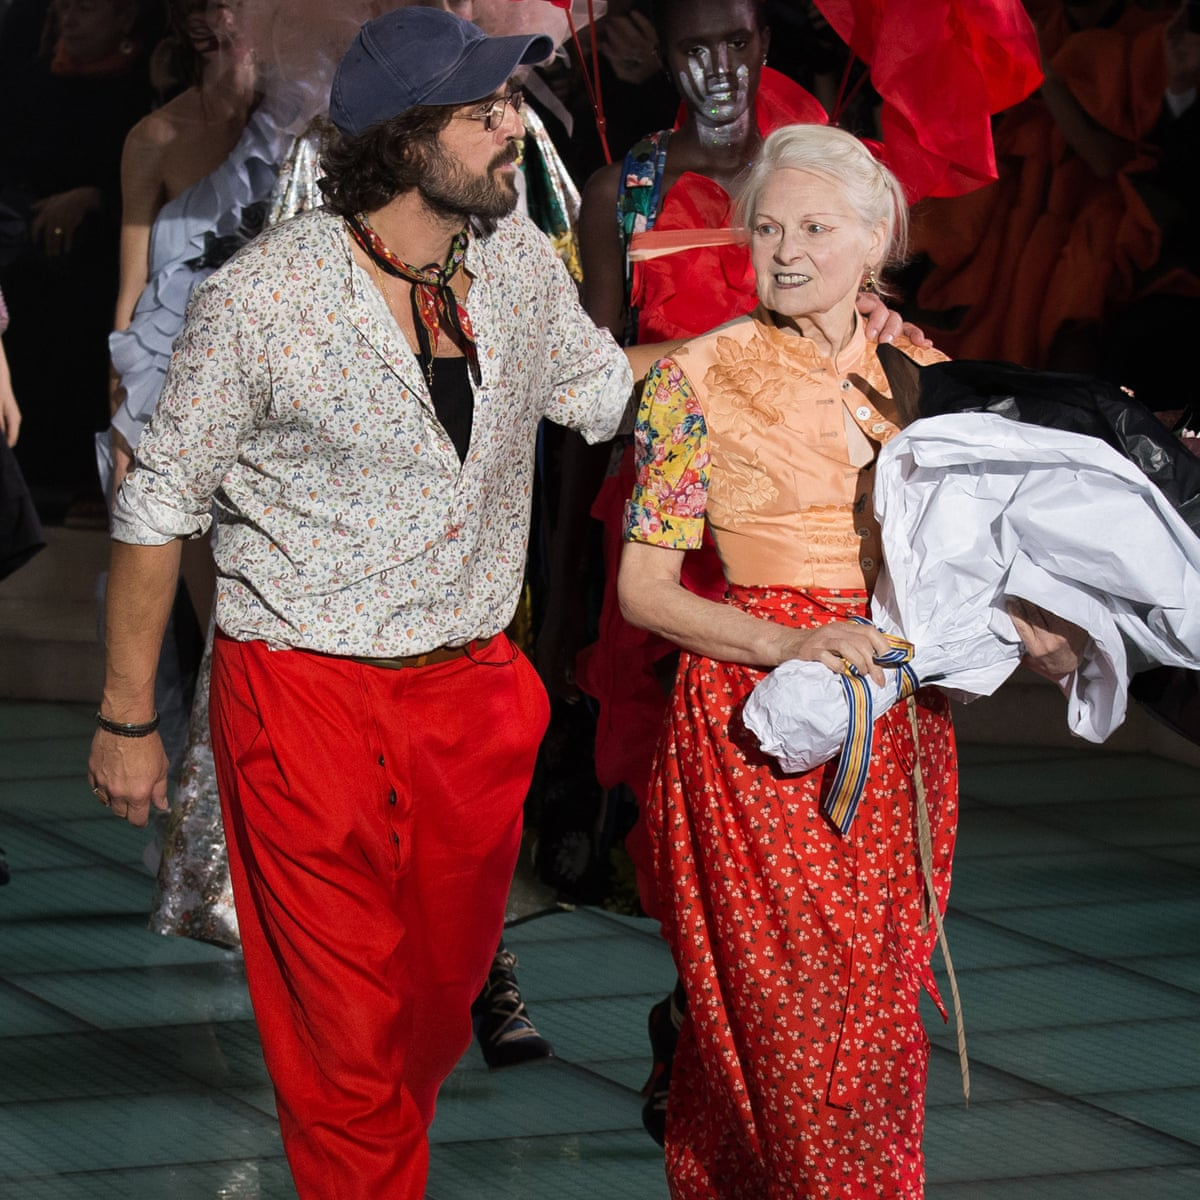 Vivienne Westwood On Her Secret To Staying Young Bathe Once A Week Vivienne Westwood The Guardian